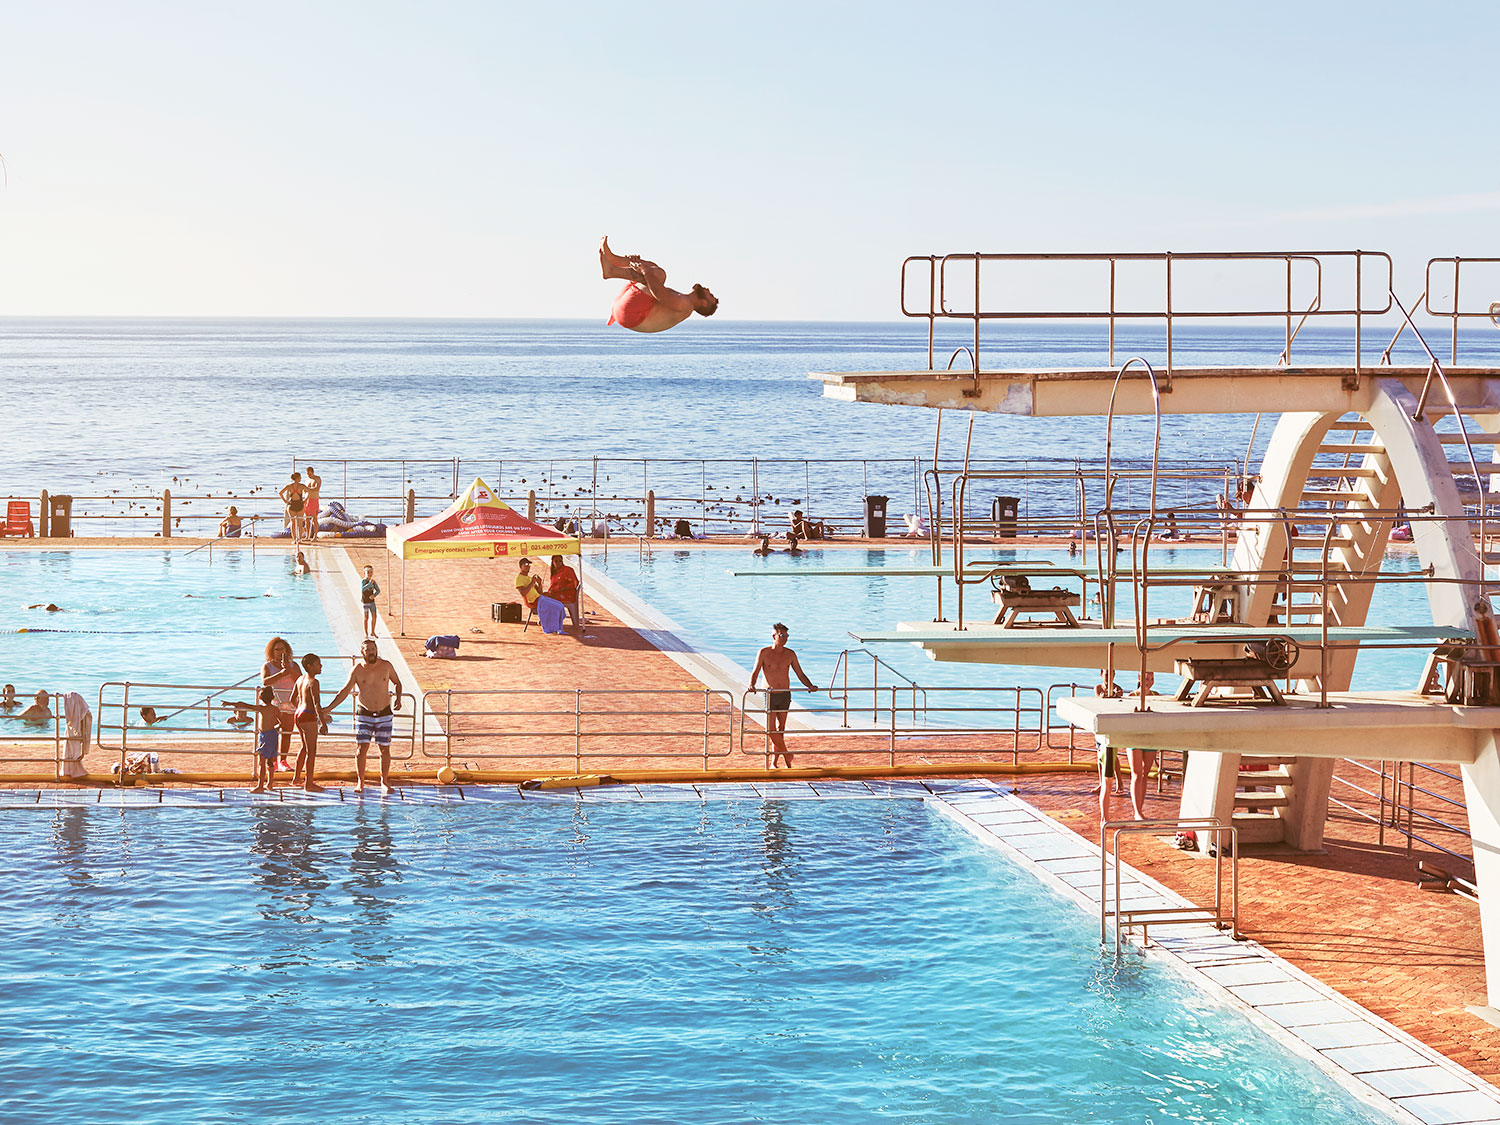 The public pool  at Sea Point has managed to stay up and running in spite of the water crisis. Sea Point, Cape Town.